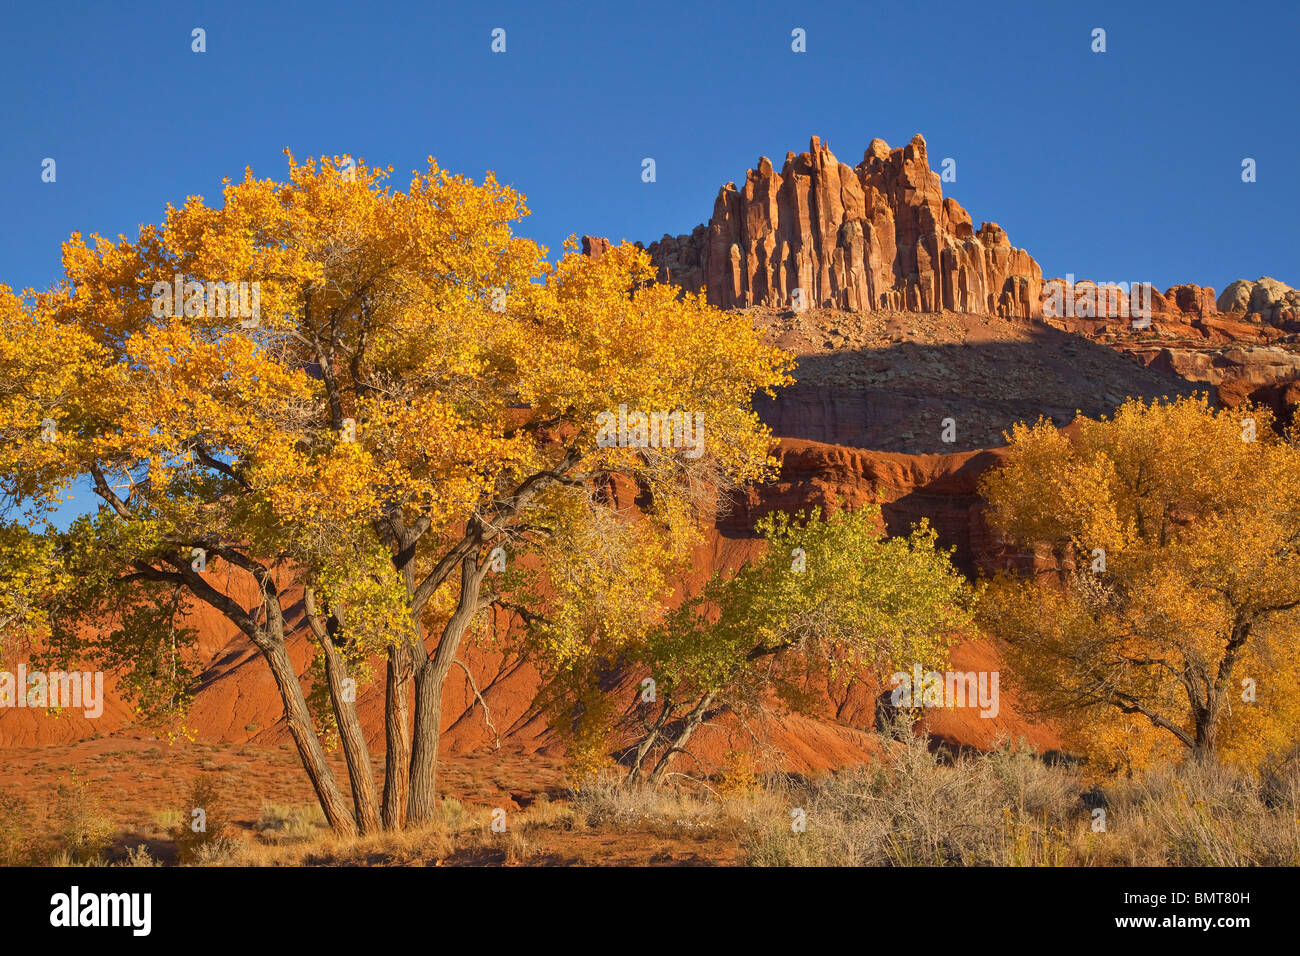 Cottonwood tree with golden autumn color and The Castle rising in background at Capitol Reef National Park, Utah, - Stock Image